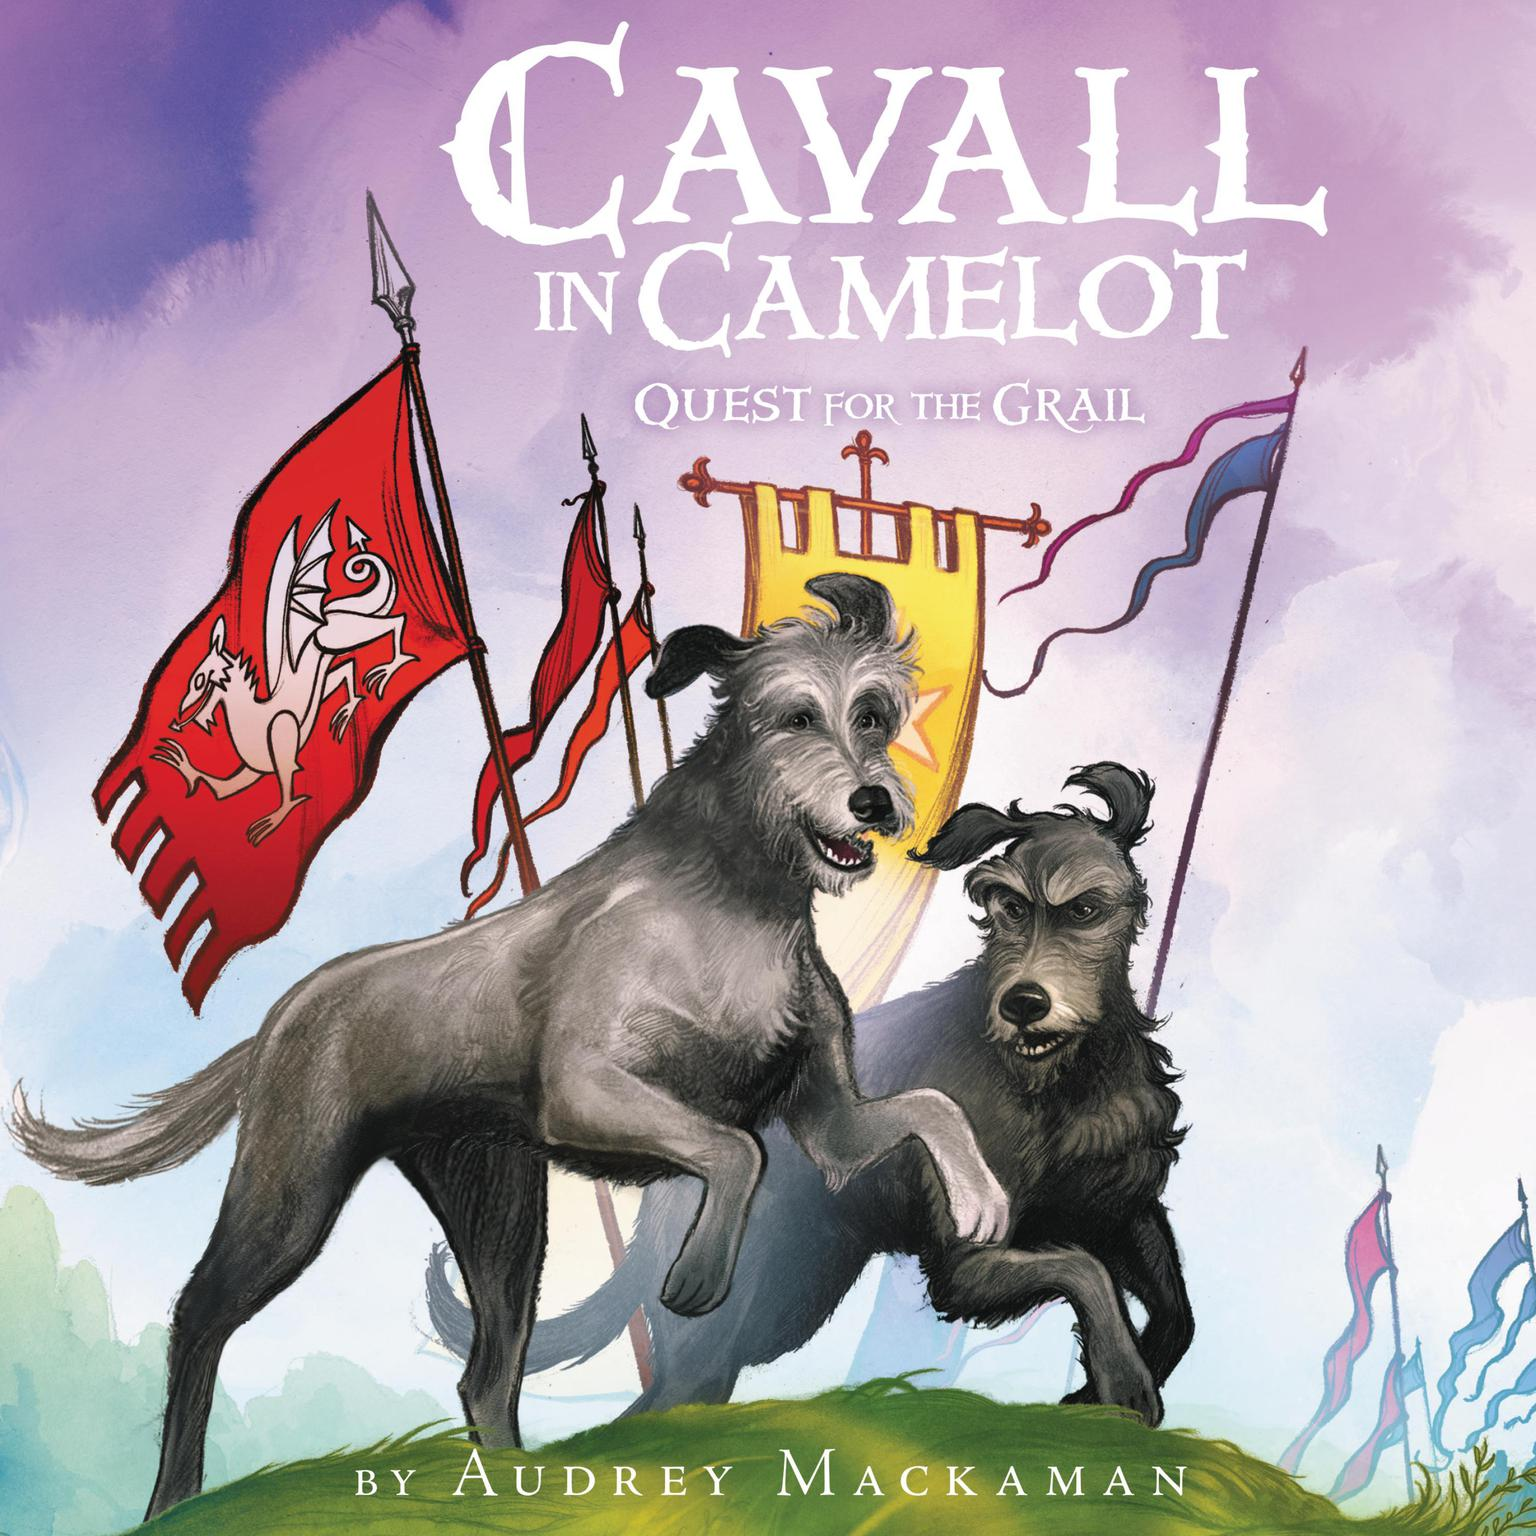 Printable Cavall in Camelot #2: Quest for the Grail Audiobook Cover Art